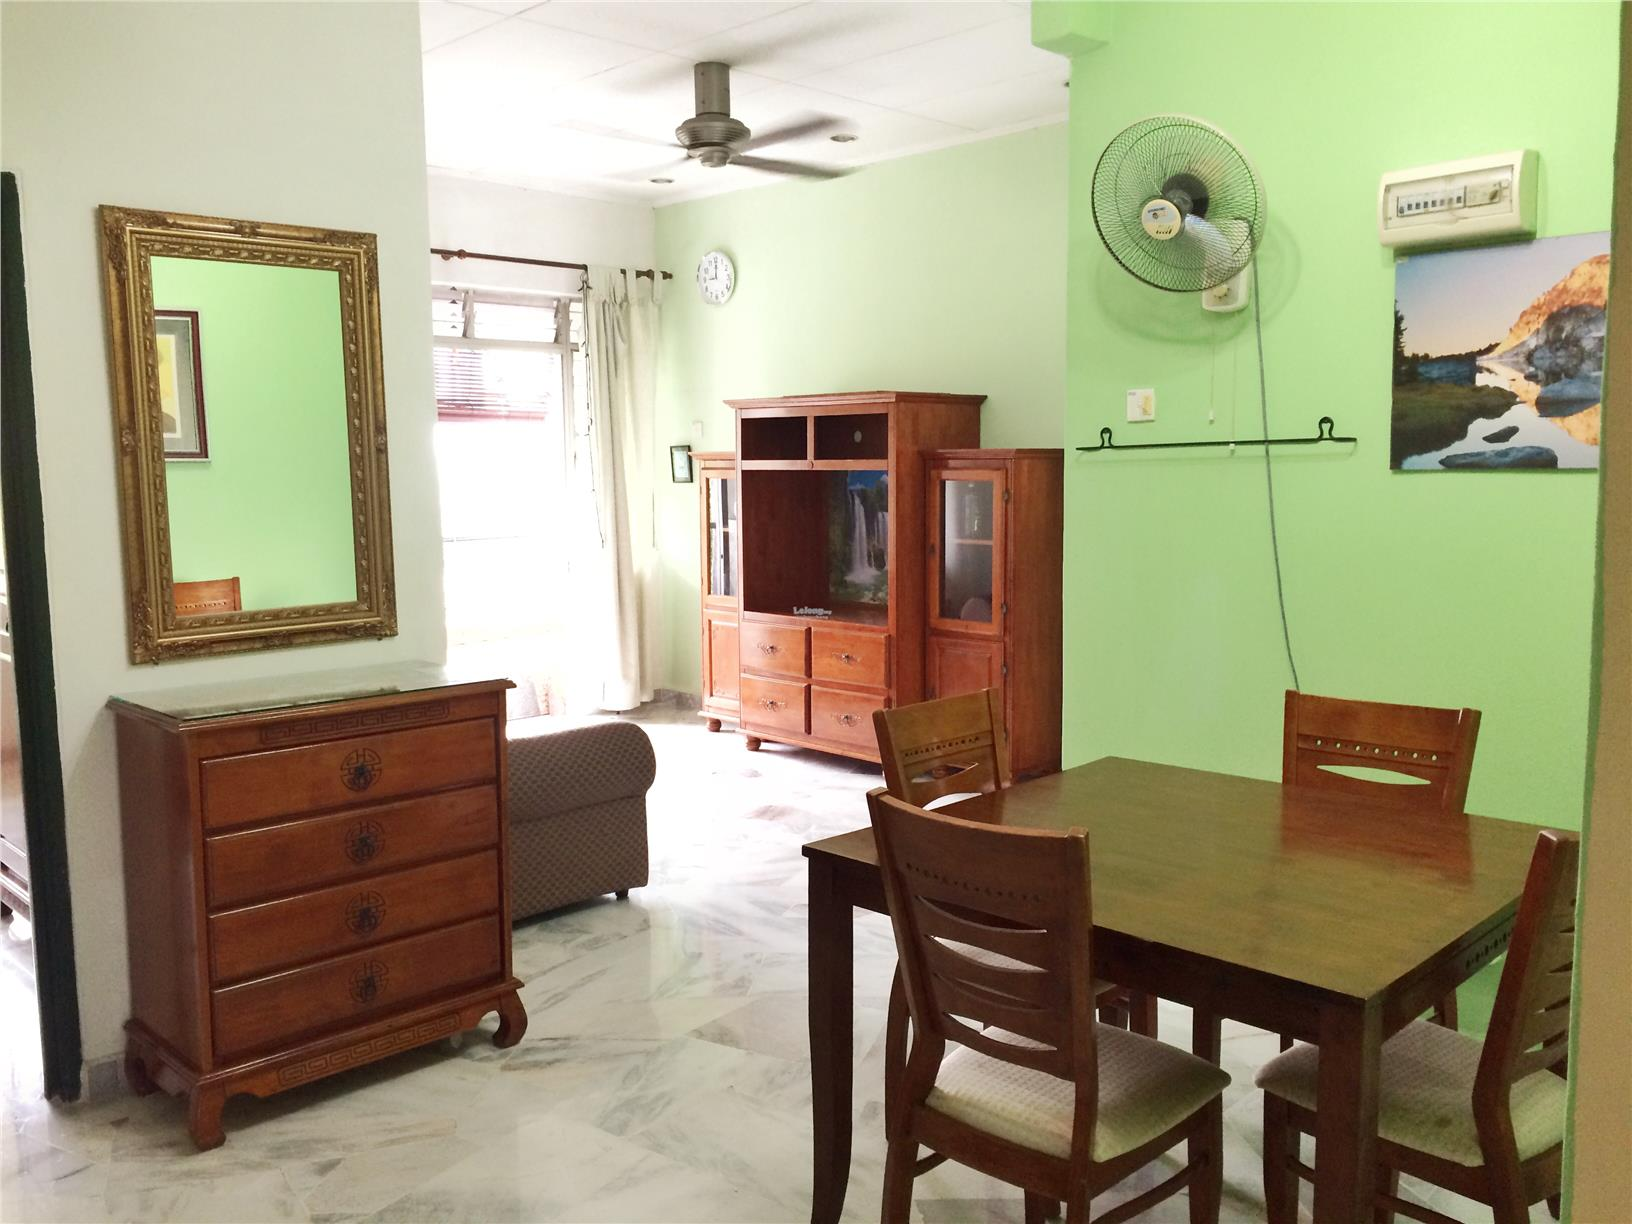 Kesuma Apartment (entire 3-bed 2-bath apartment for rent) Posted by st